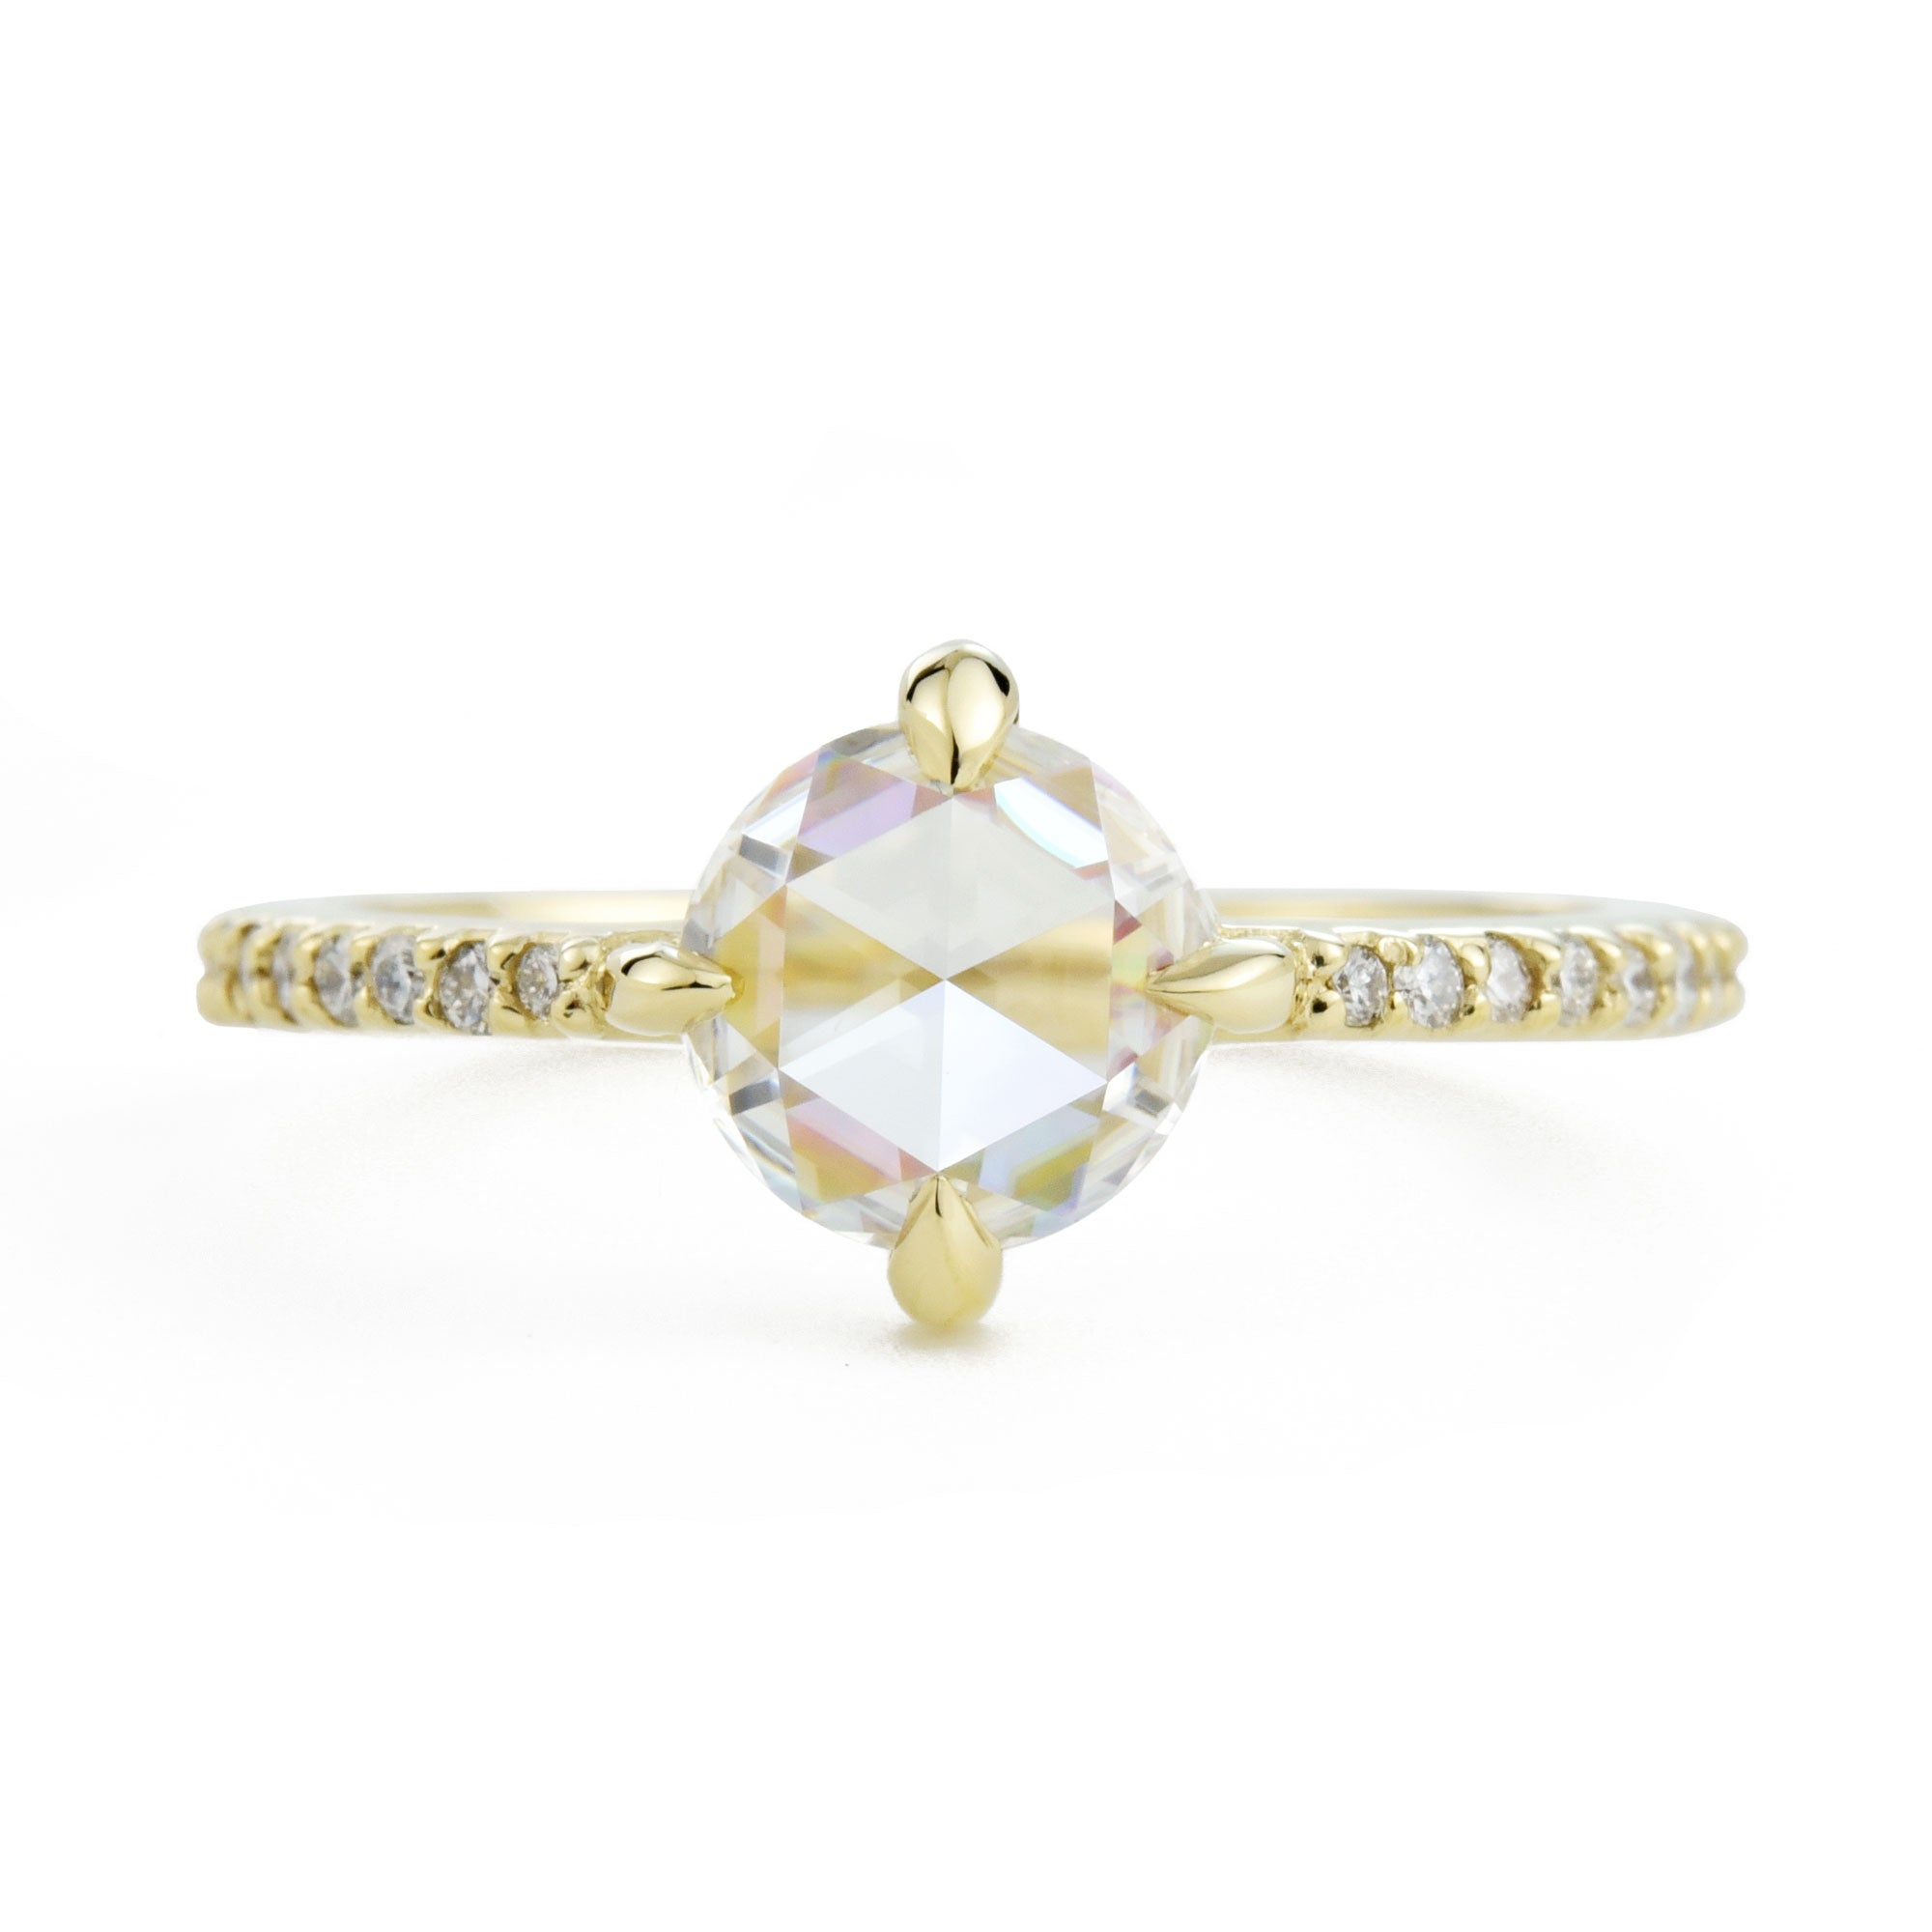 Eva Rose Cut Moissanite Engagement Ring with Pavé Diamonds in yellow gold